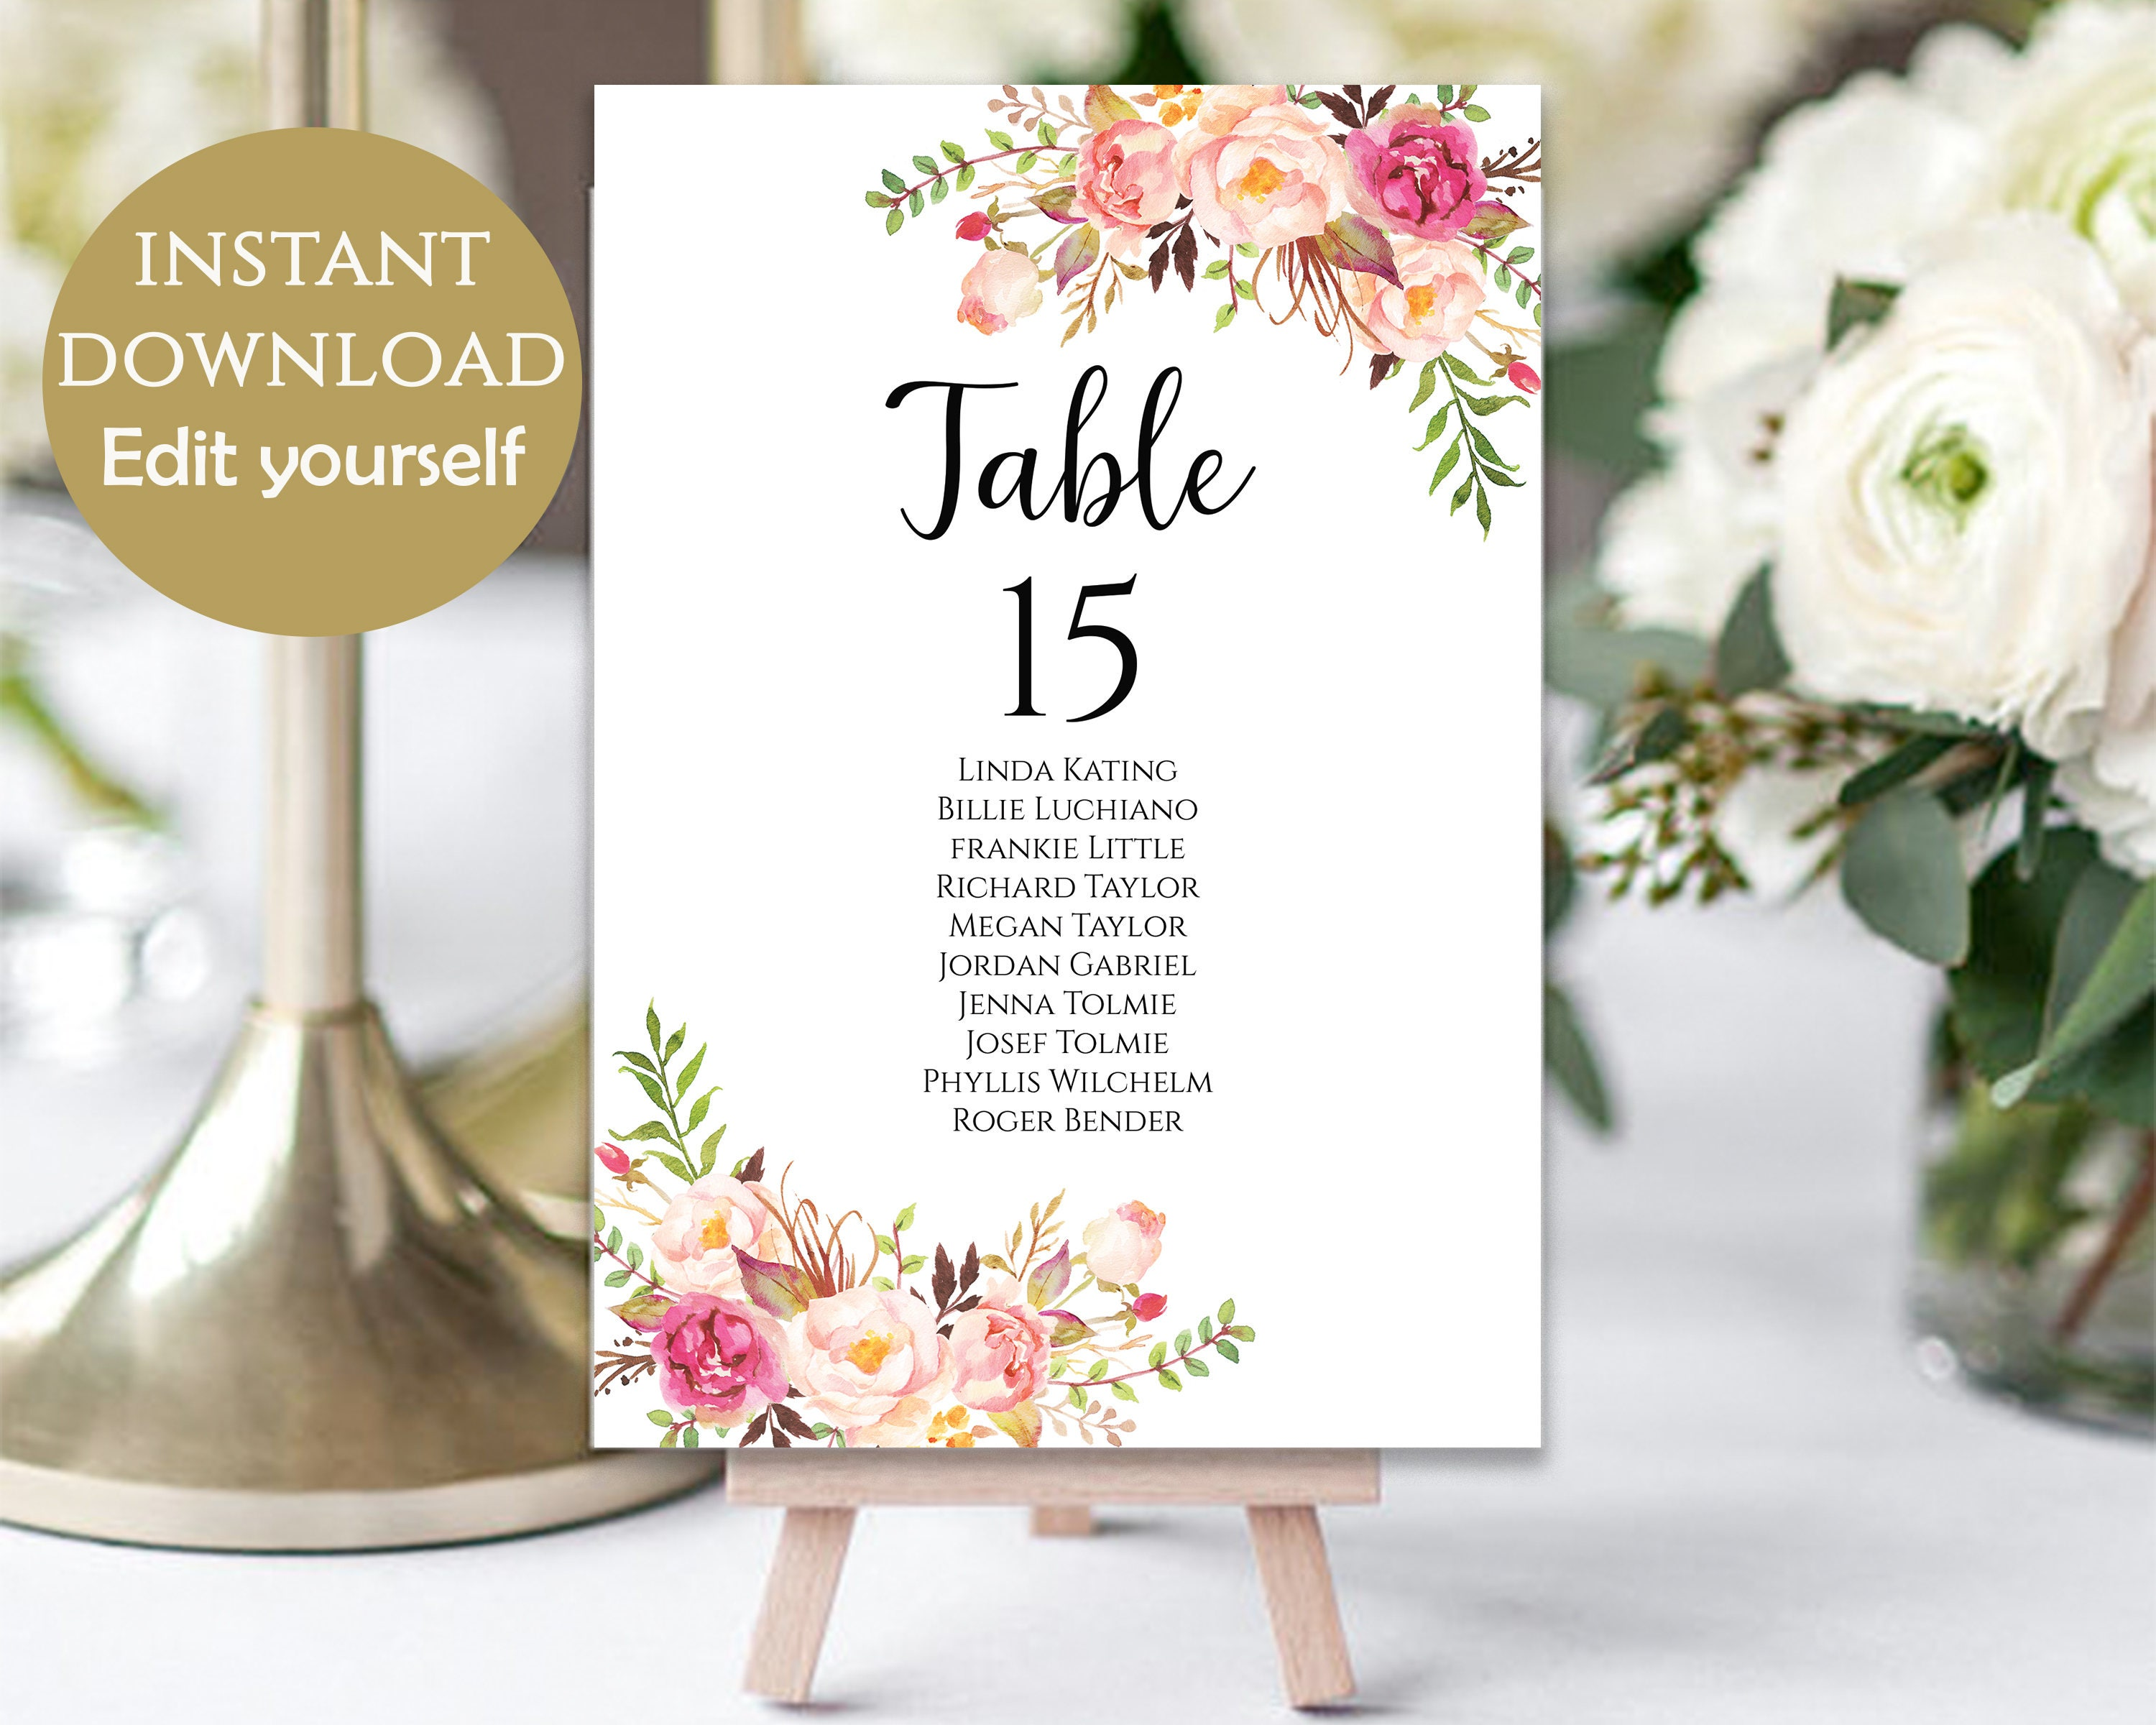 Wedding seating chart template seating cards seating chart sign wedding seating chart template seating cards seating chart sign editable seating chart printable templates editable signs maxwellsz